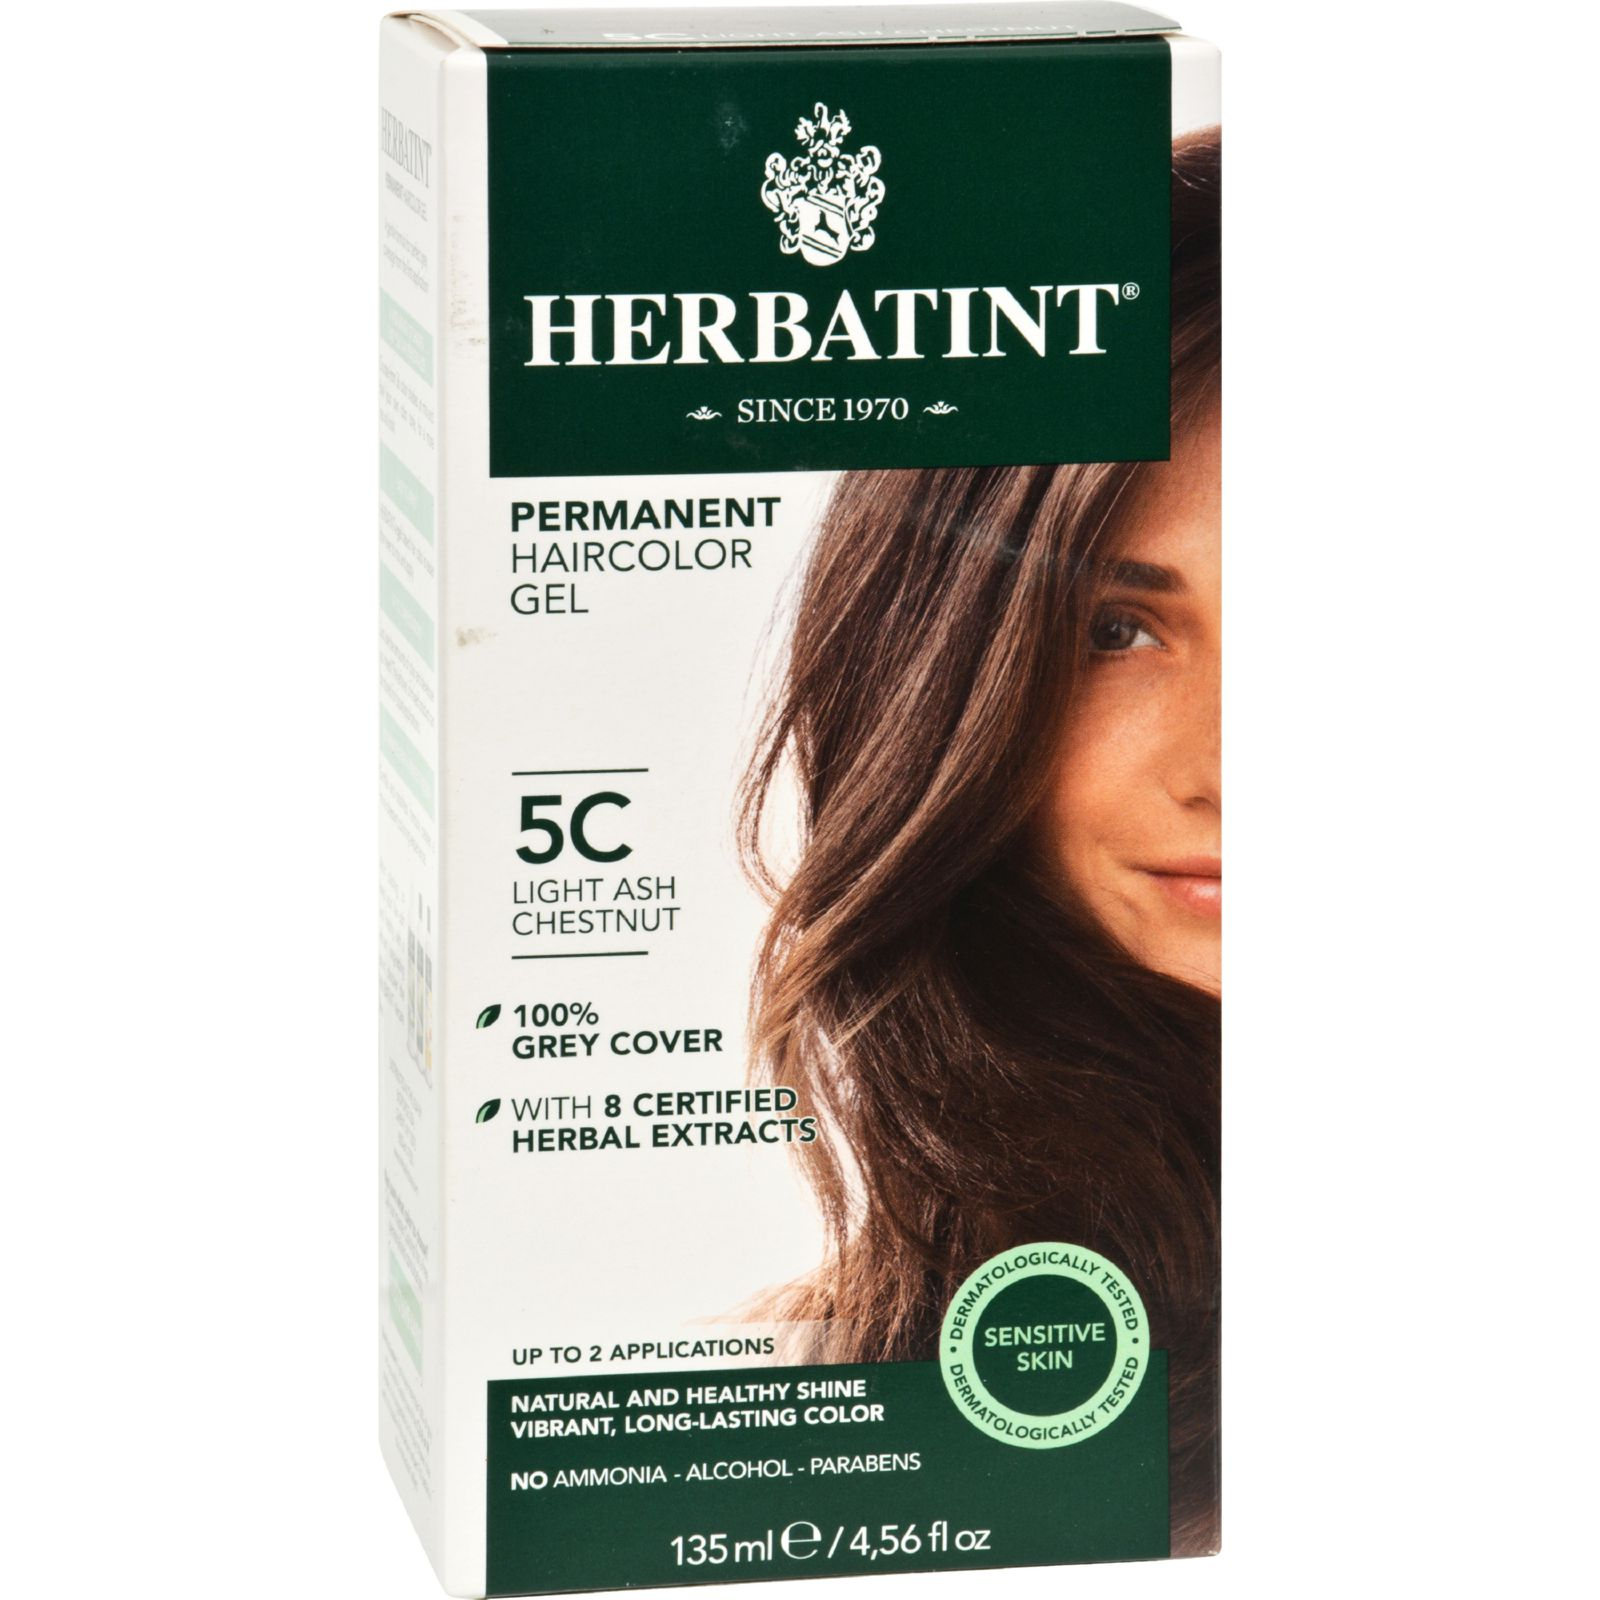 Herbatint Permanent Hair Color Permanent Herbal Haircolou...